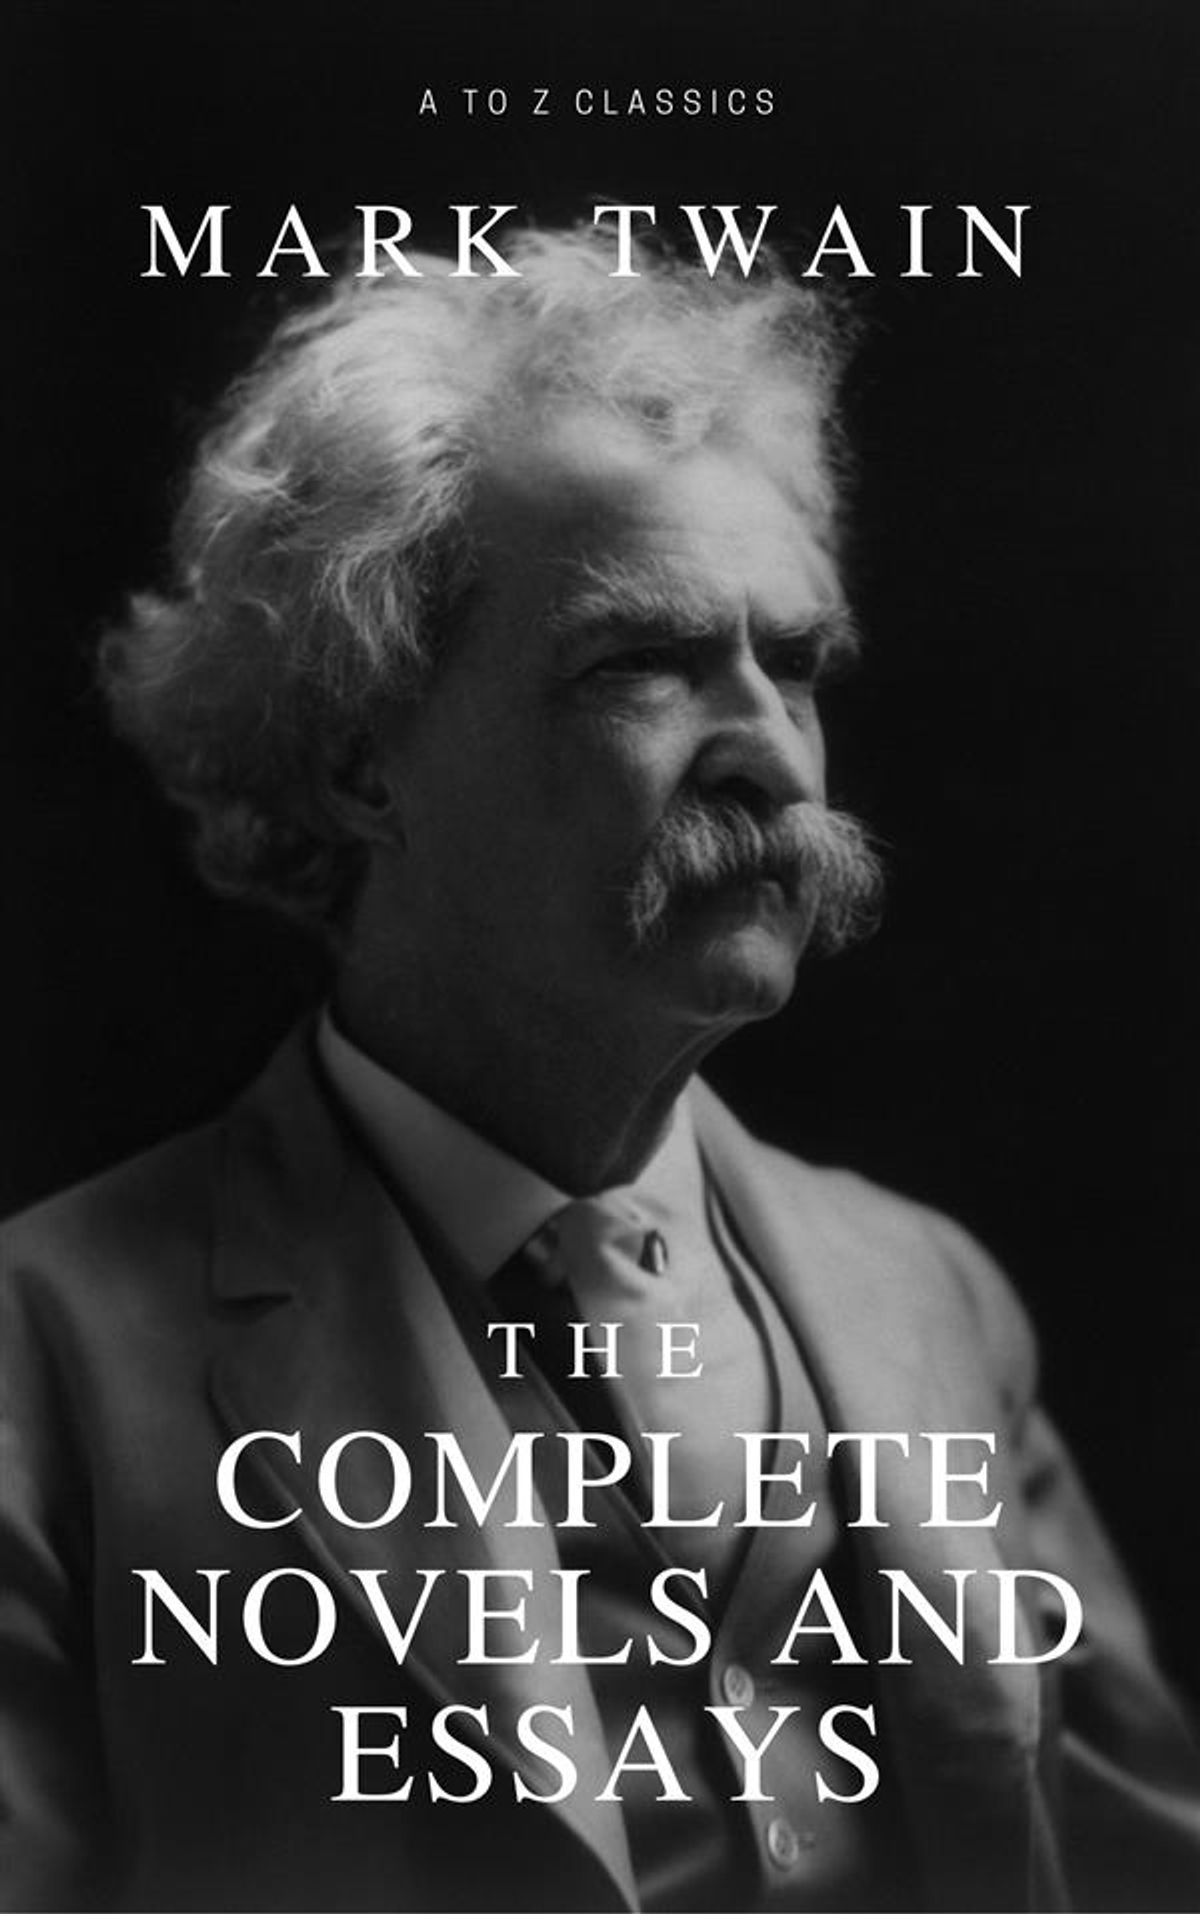 009 Essay Example Mark Twain The Complete Novels And Surprising Essays Pdf On Writing Nonfiction Full